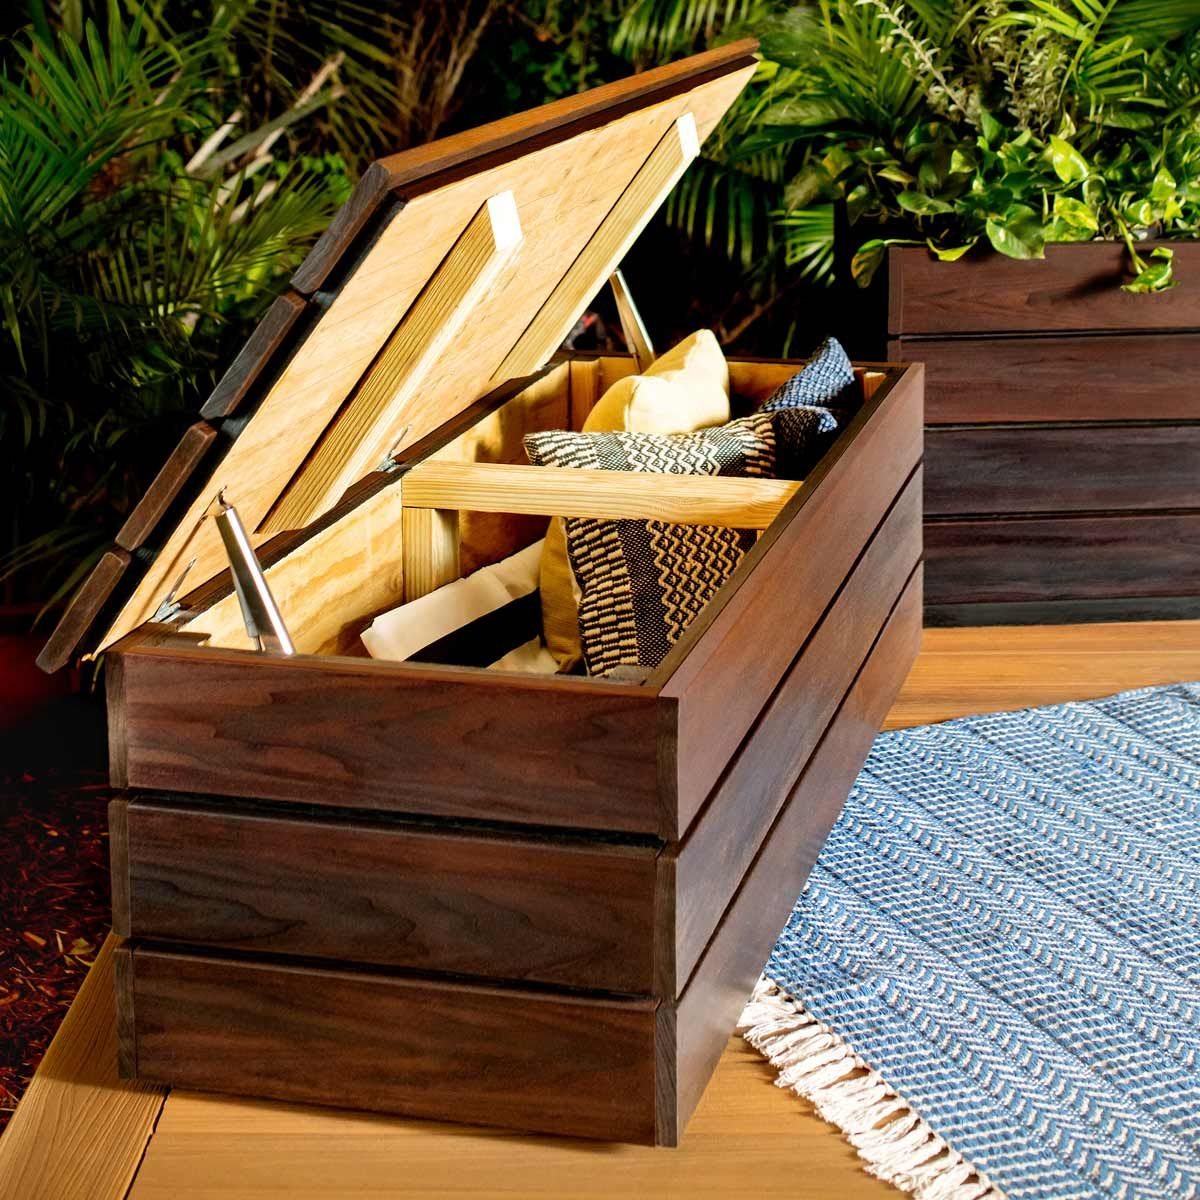 How to Build an Outdoor Storage Bench | Outdoor storage ...